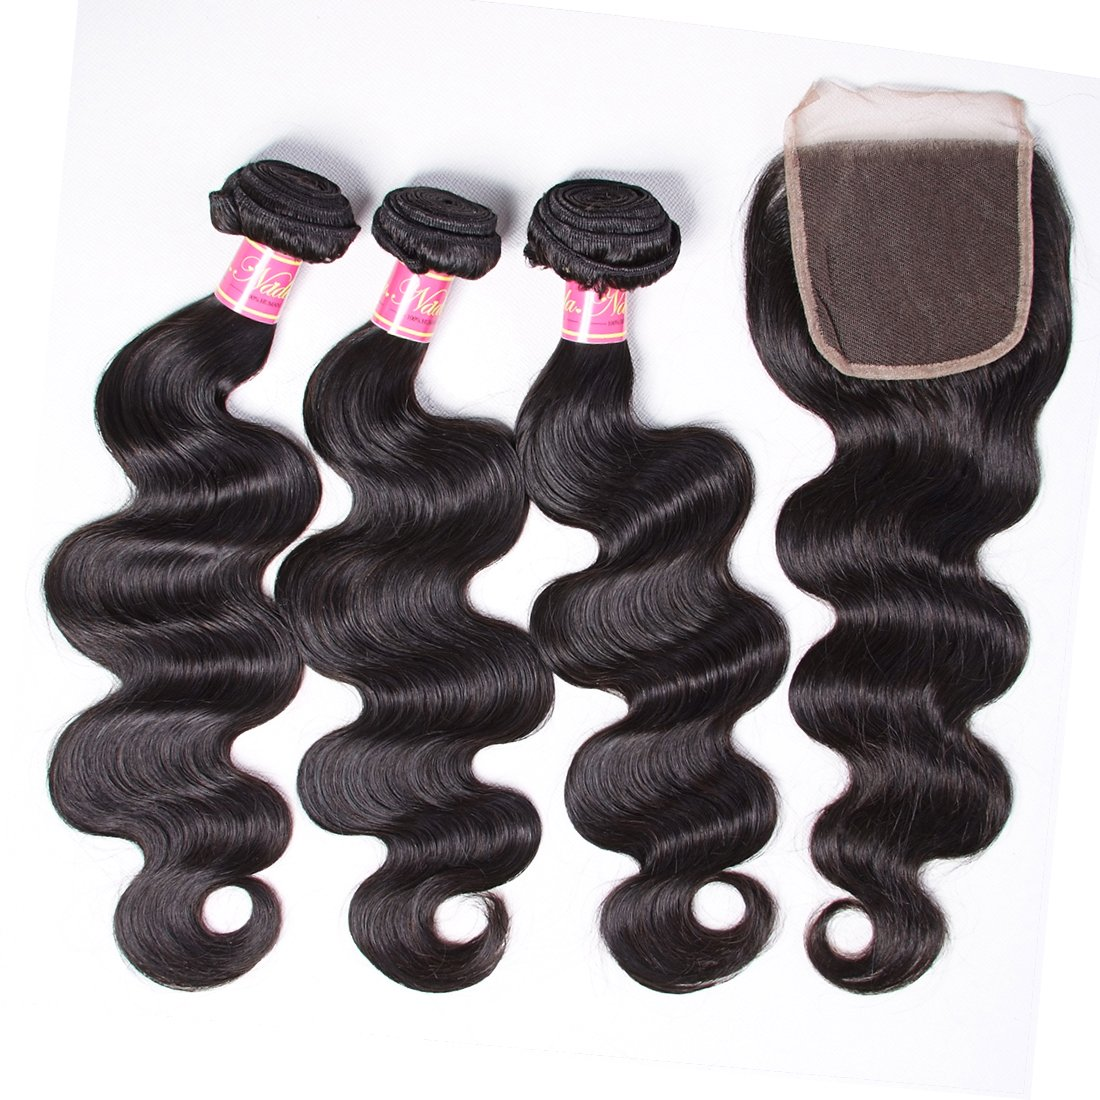 Nadula 6A Gorgeous Body Wave Brazilian Virgin Hair Free Part Lace Closure with 3 Bundles Unprocessed Remy Human Hair Weave Extensions Natural Color (18 20 22&16closure) by Nadula (Image #2)